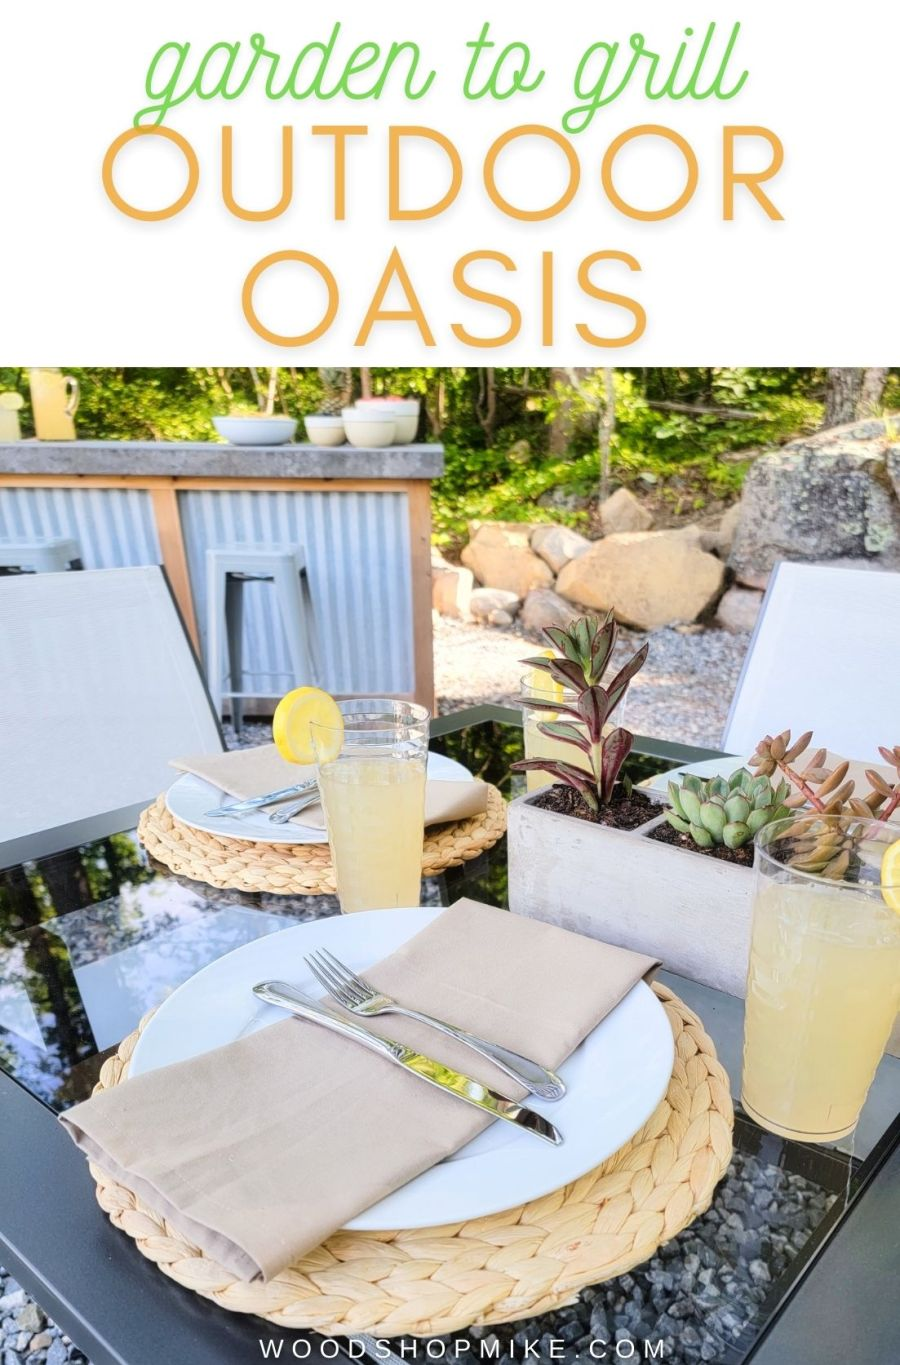 Garden to grill outdoor oasis tablescape